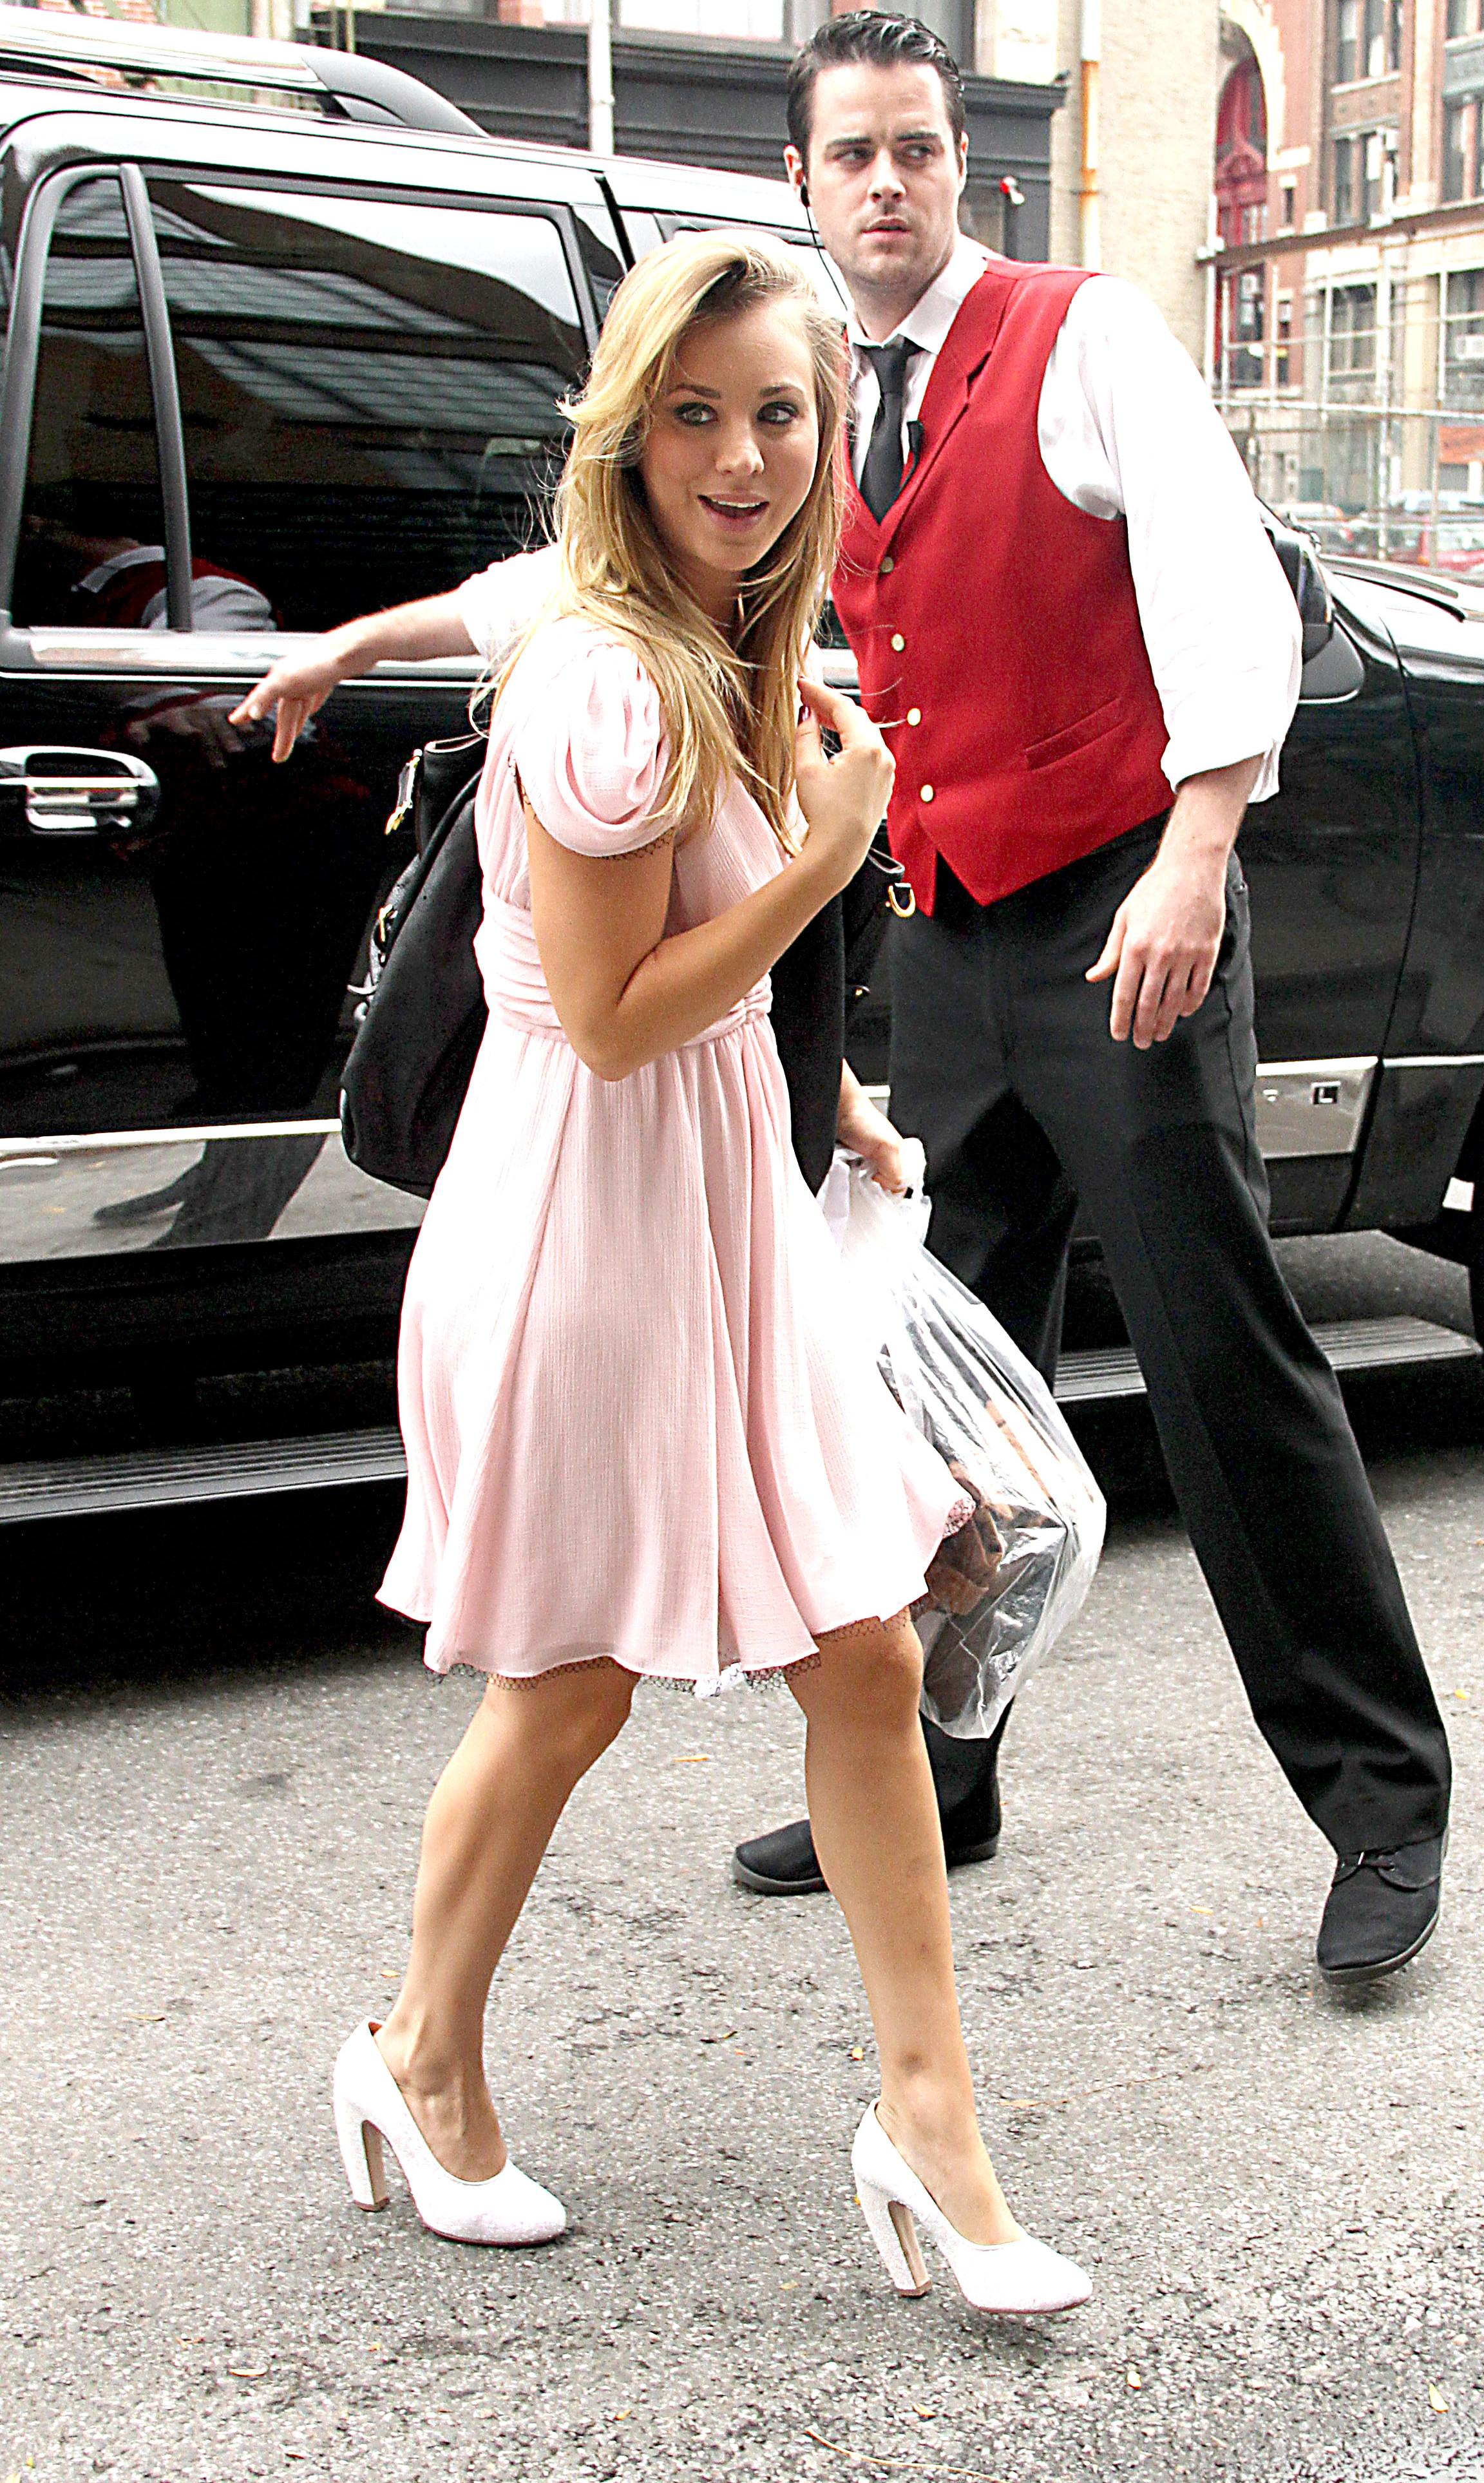 663127350_Kaley_Cuoco_at_Live_with_Regis_and_Kelly2_122_373lo.jpg